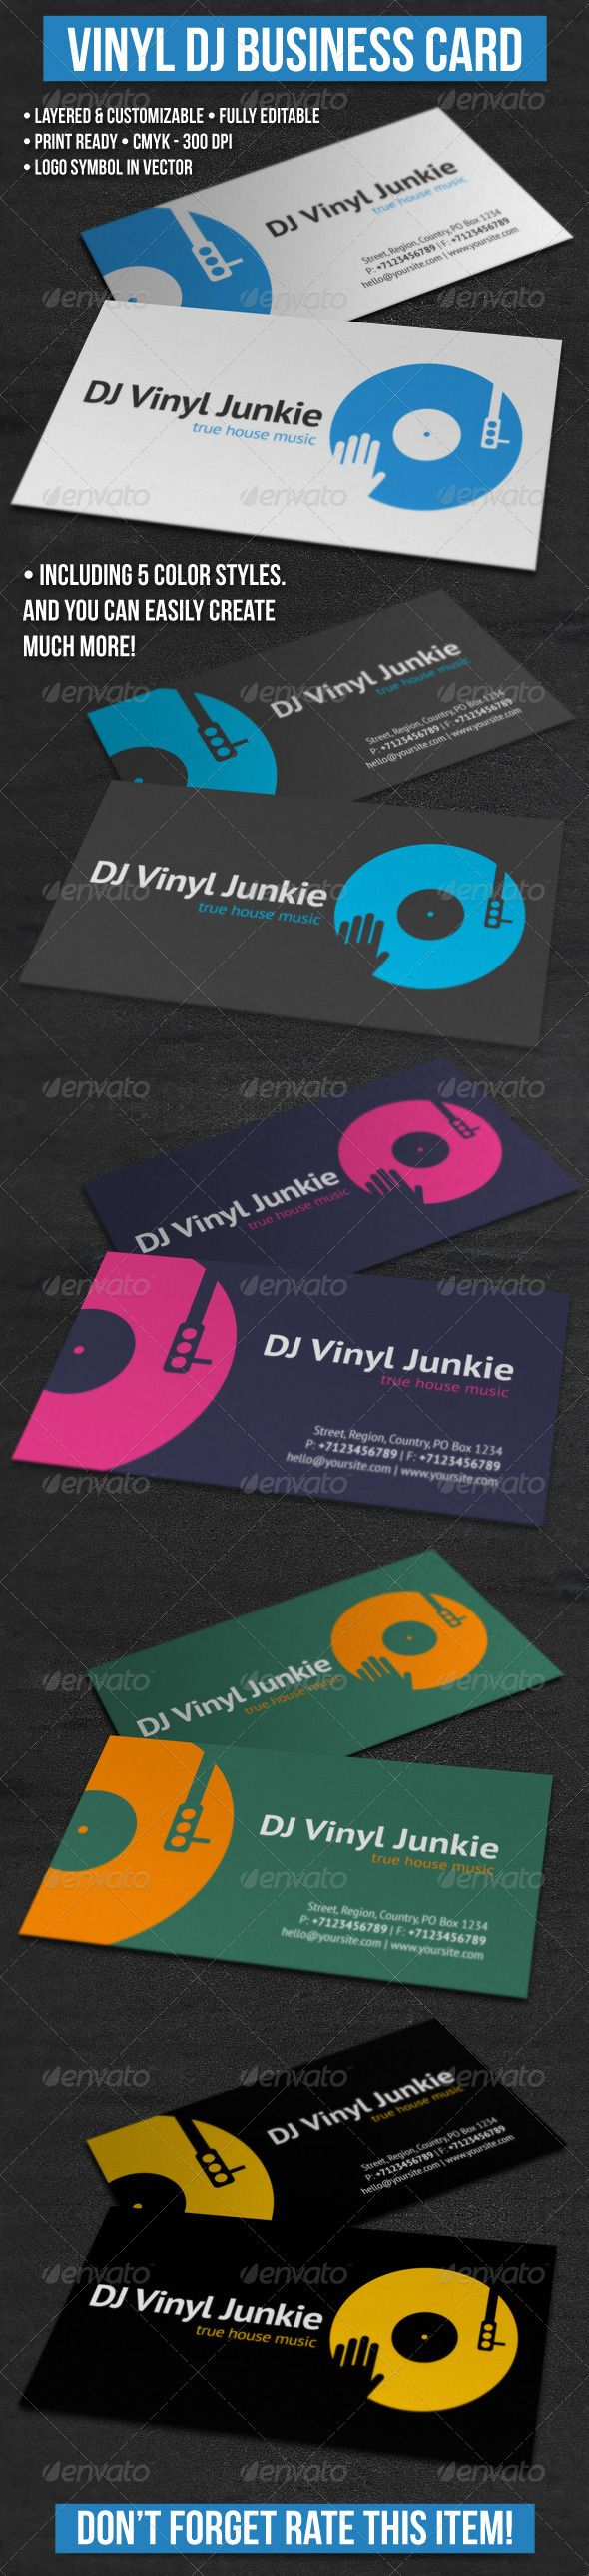 34 best dj business cards images on pinterest dj business cards vinyl dj business card djcard djbusinesscard businesscard digital dj vinyl reheart Image collections